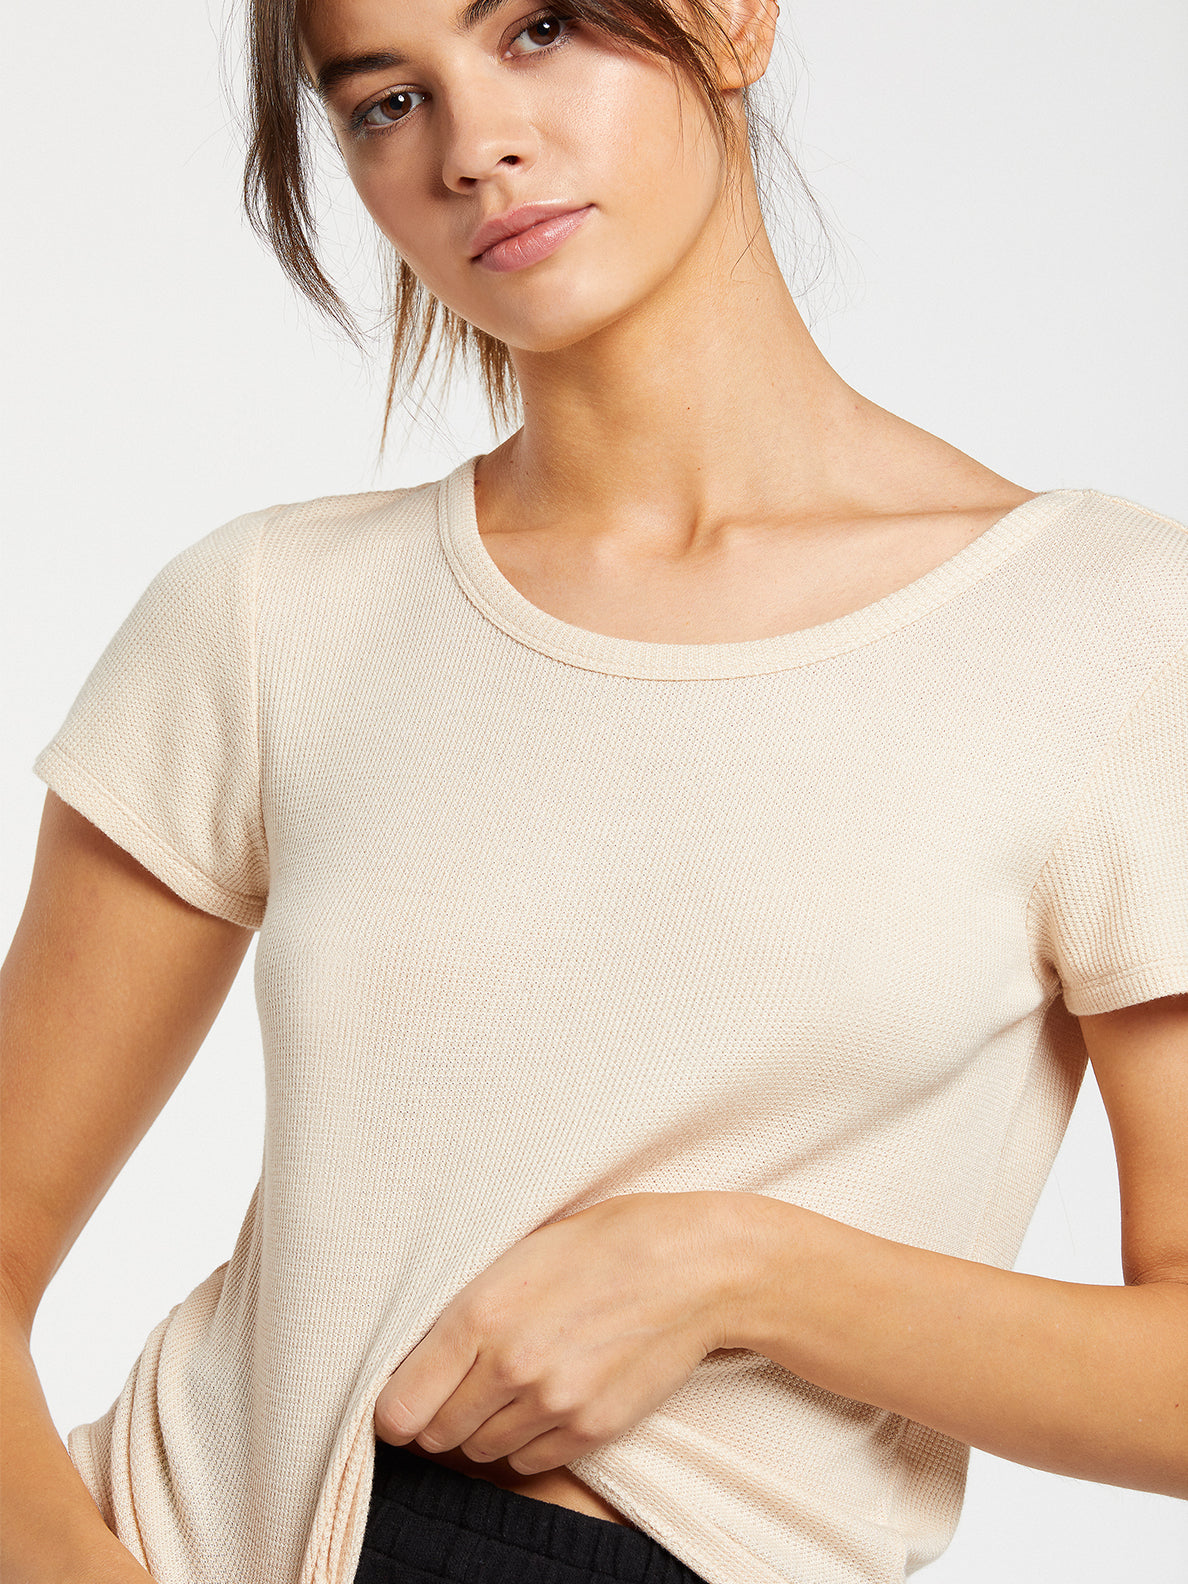 Lived In Lounge Thermal Short Sleeve - Sand (B0132000_SAN) [19]